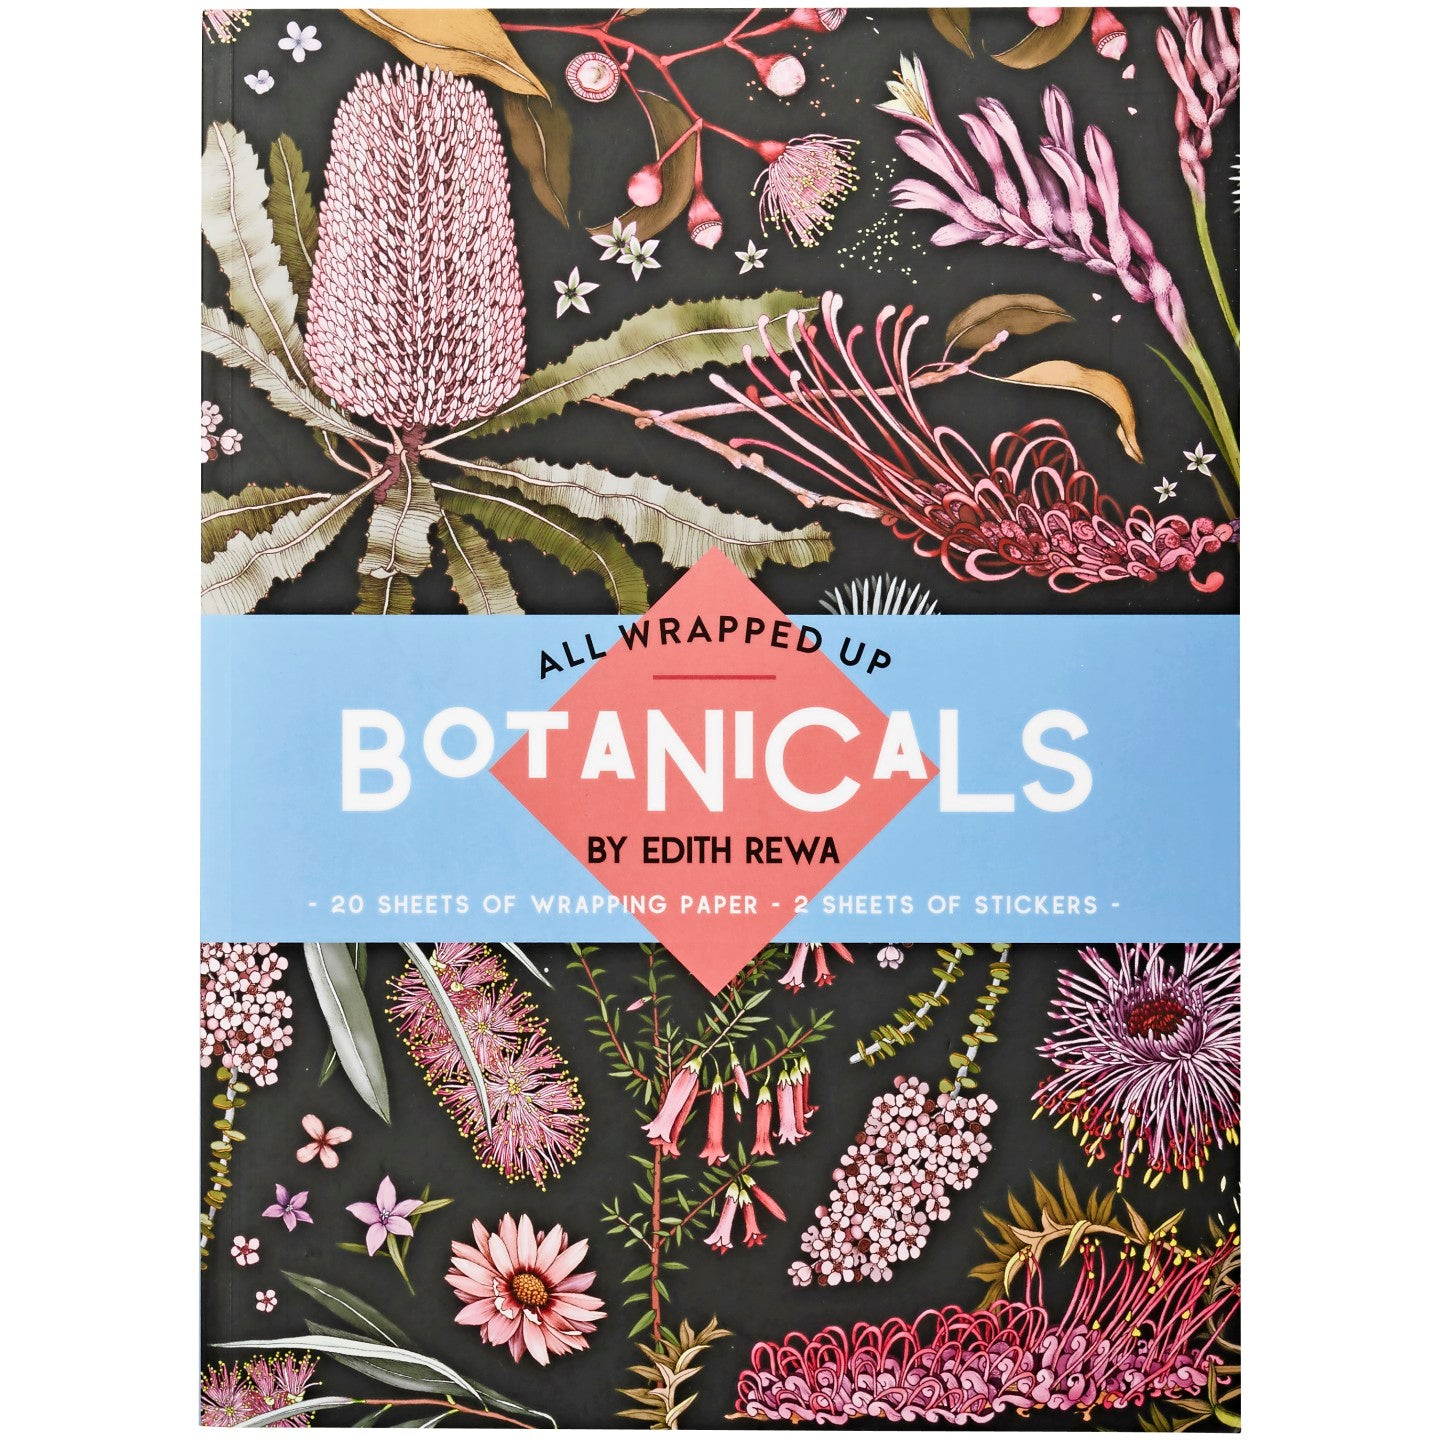 All Wrapped Up: Botanicals